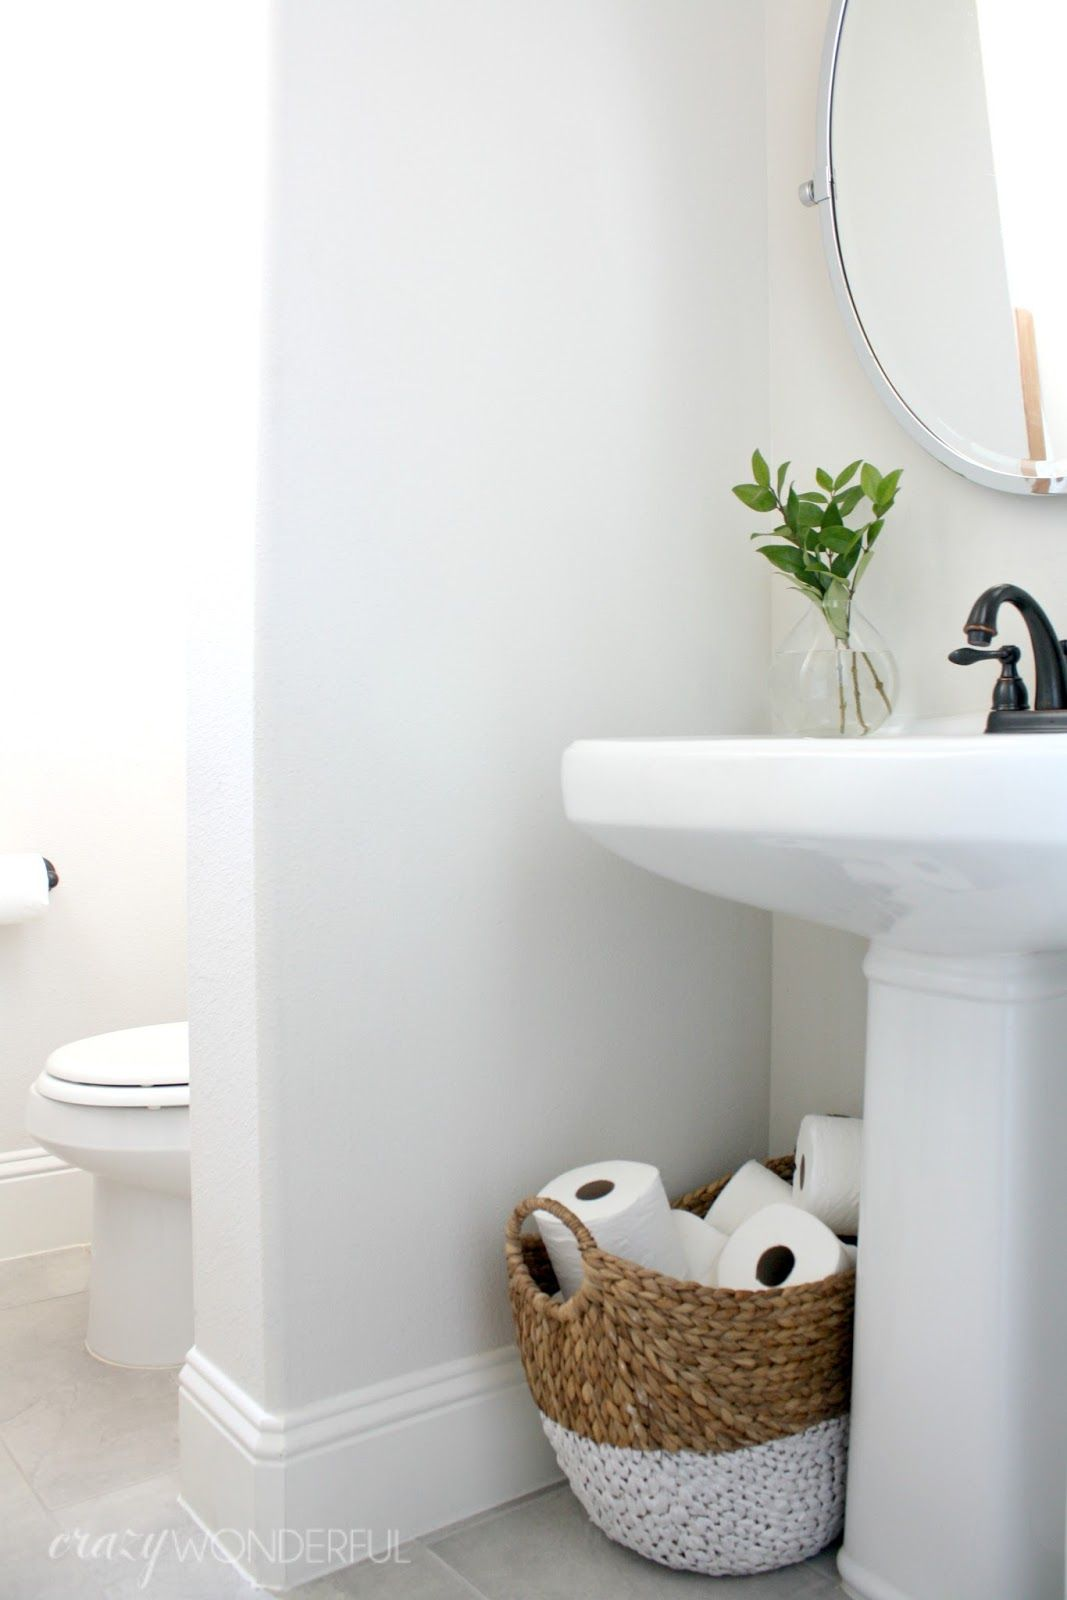 I Guess The Fancy Term Is Powder Room But We Just Call It The Hall Bathroom I Ve Not Purposely Been Holding This Bathroom From You Powder Room Storage Bathroom Sink